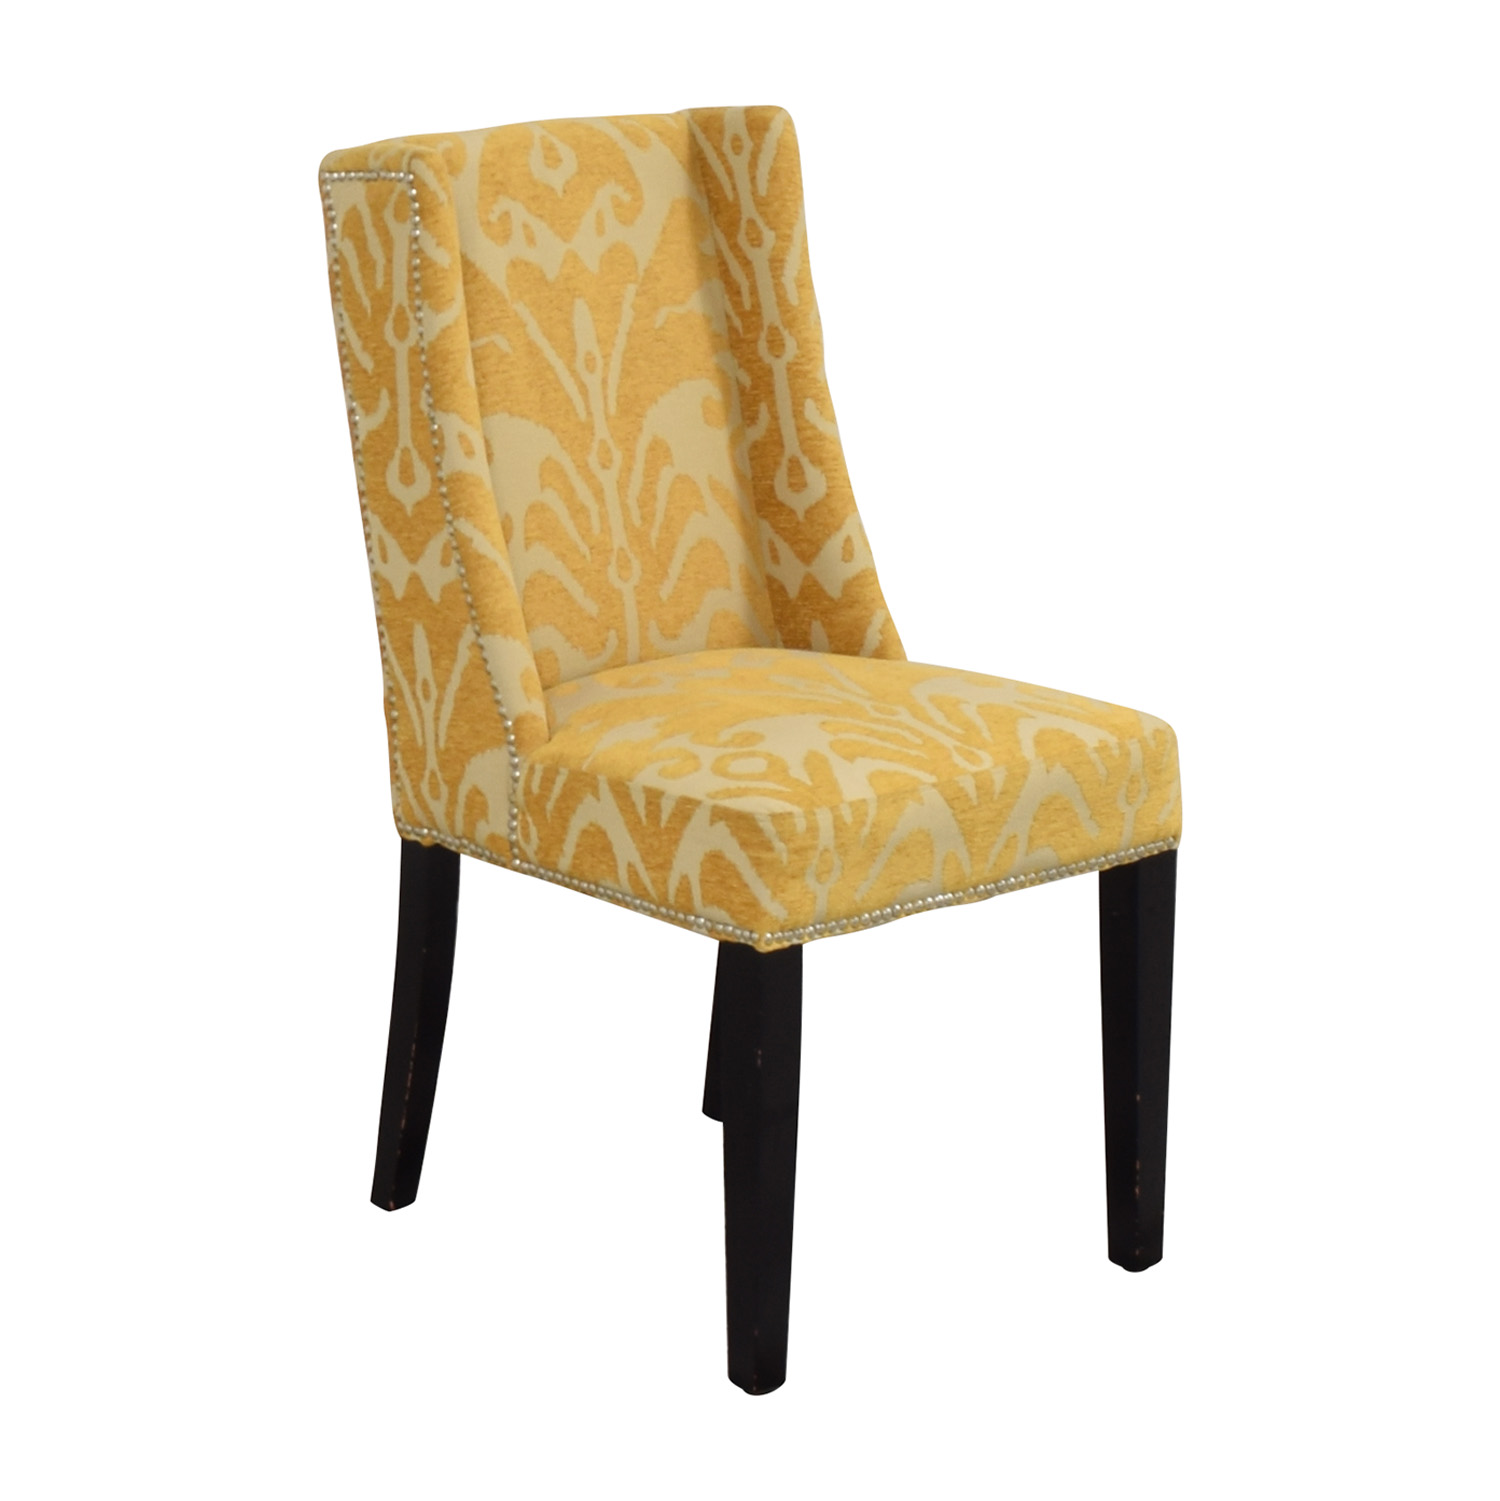 Cynthia Rowley Modern Accent Chair / Accent Chairs